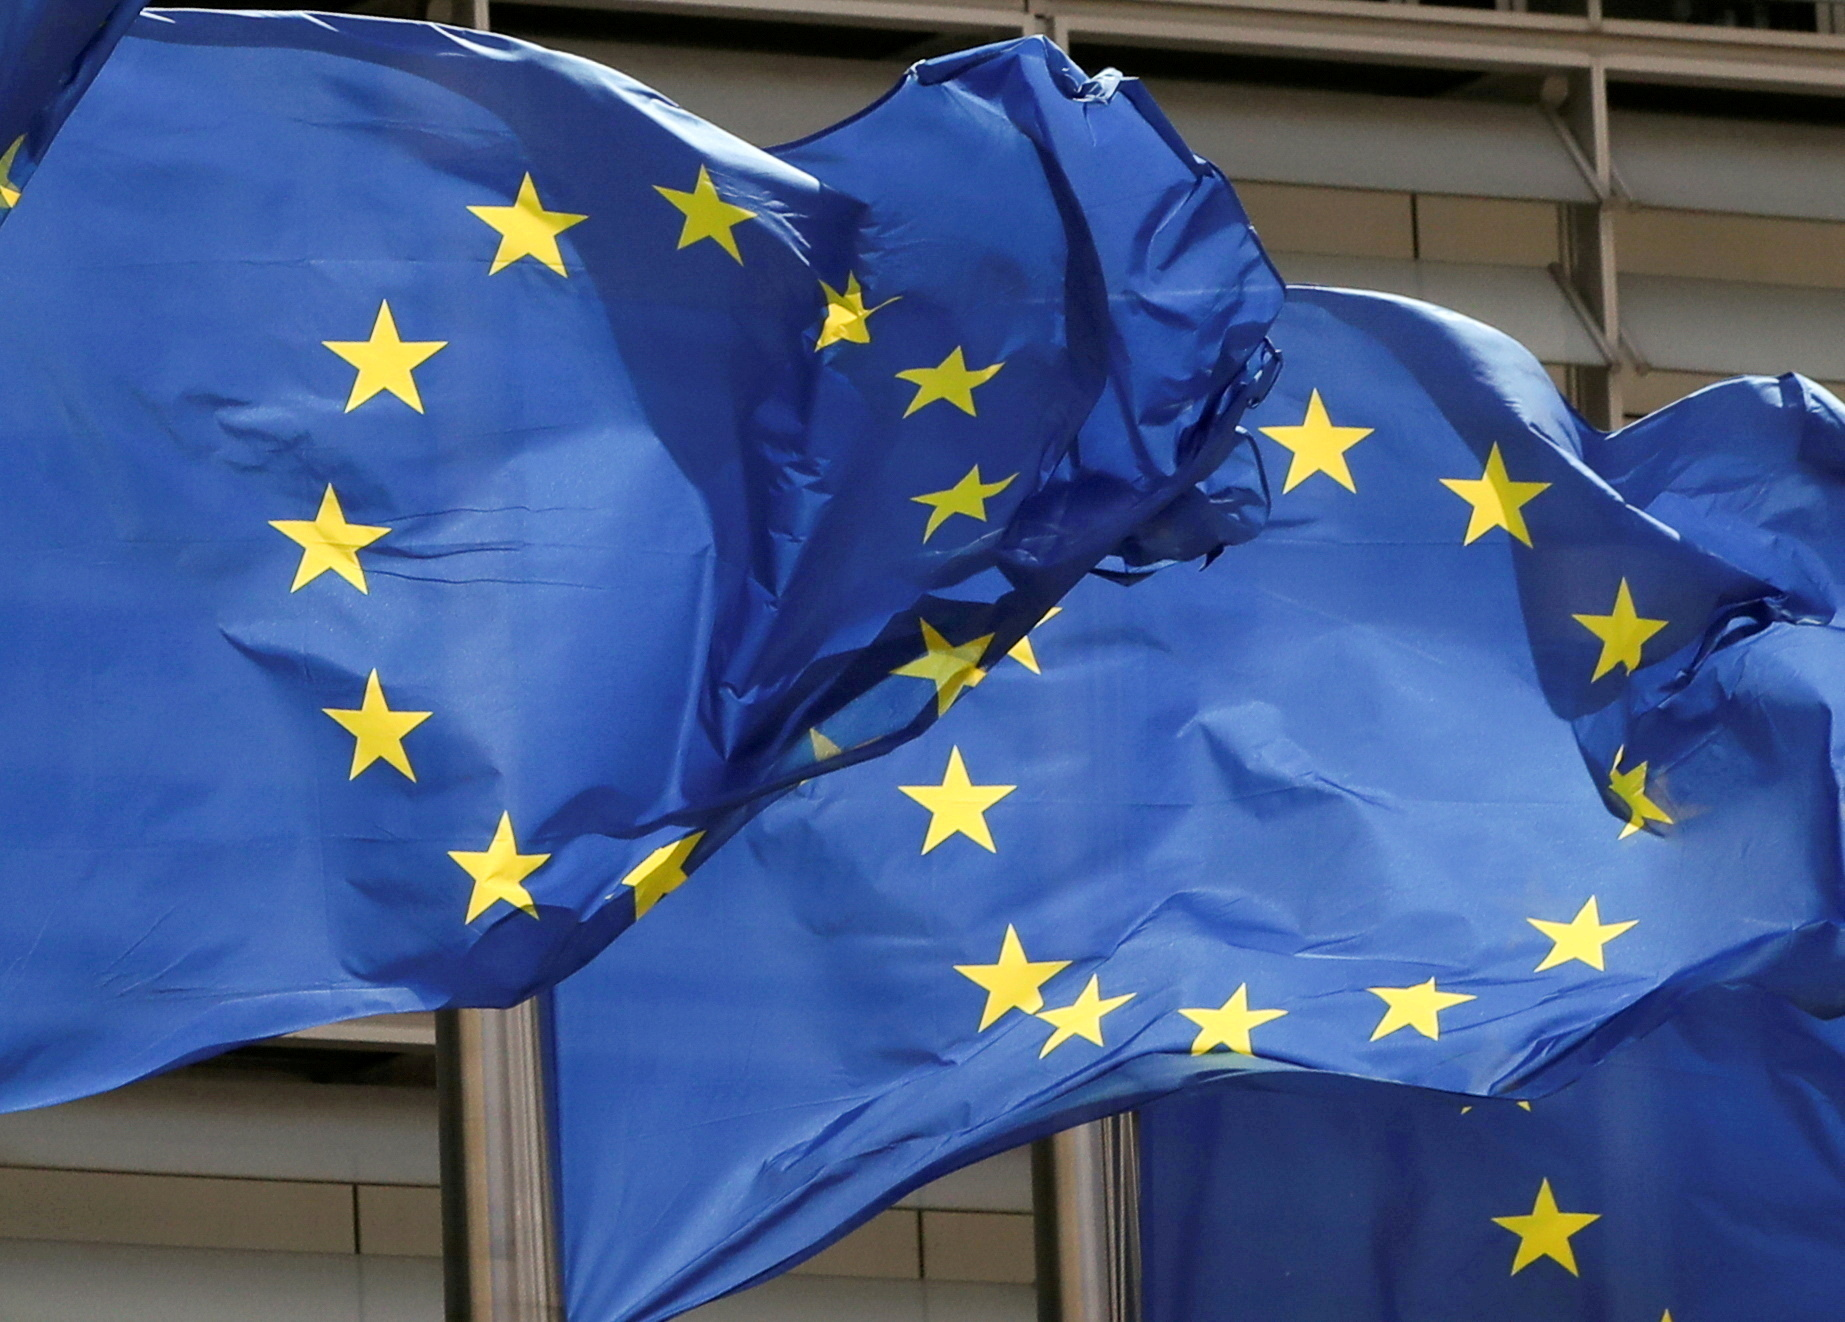 European Union flags flutter outside the EU Commission headquarters in Brussels, Belgium May 5, 2021. REUTERS/Yves Herman/File Photo